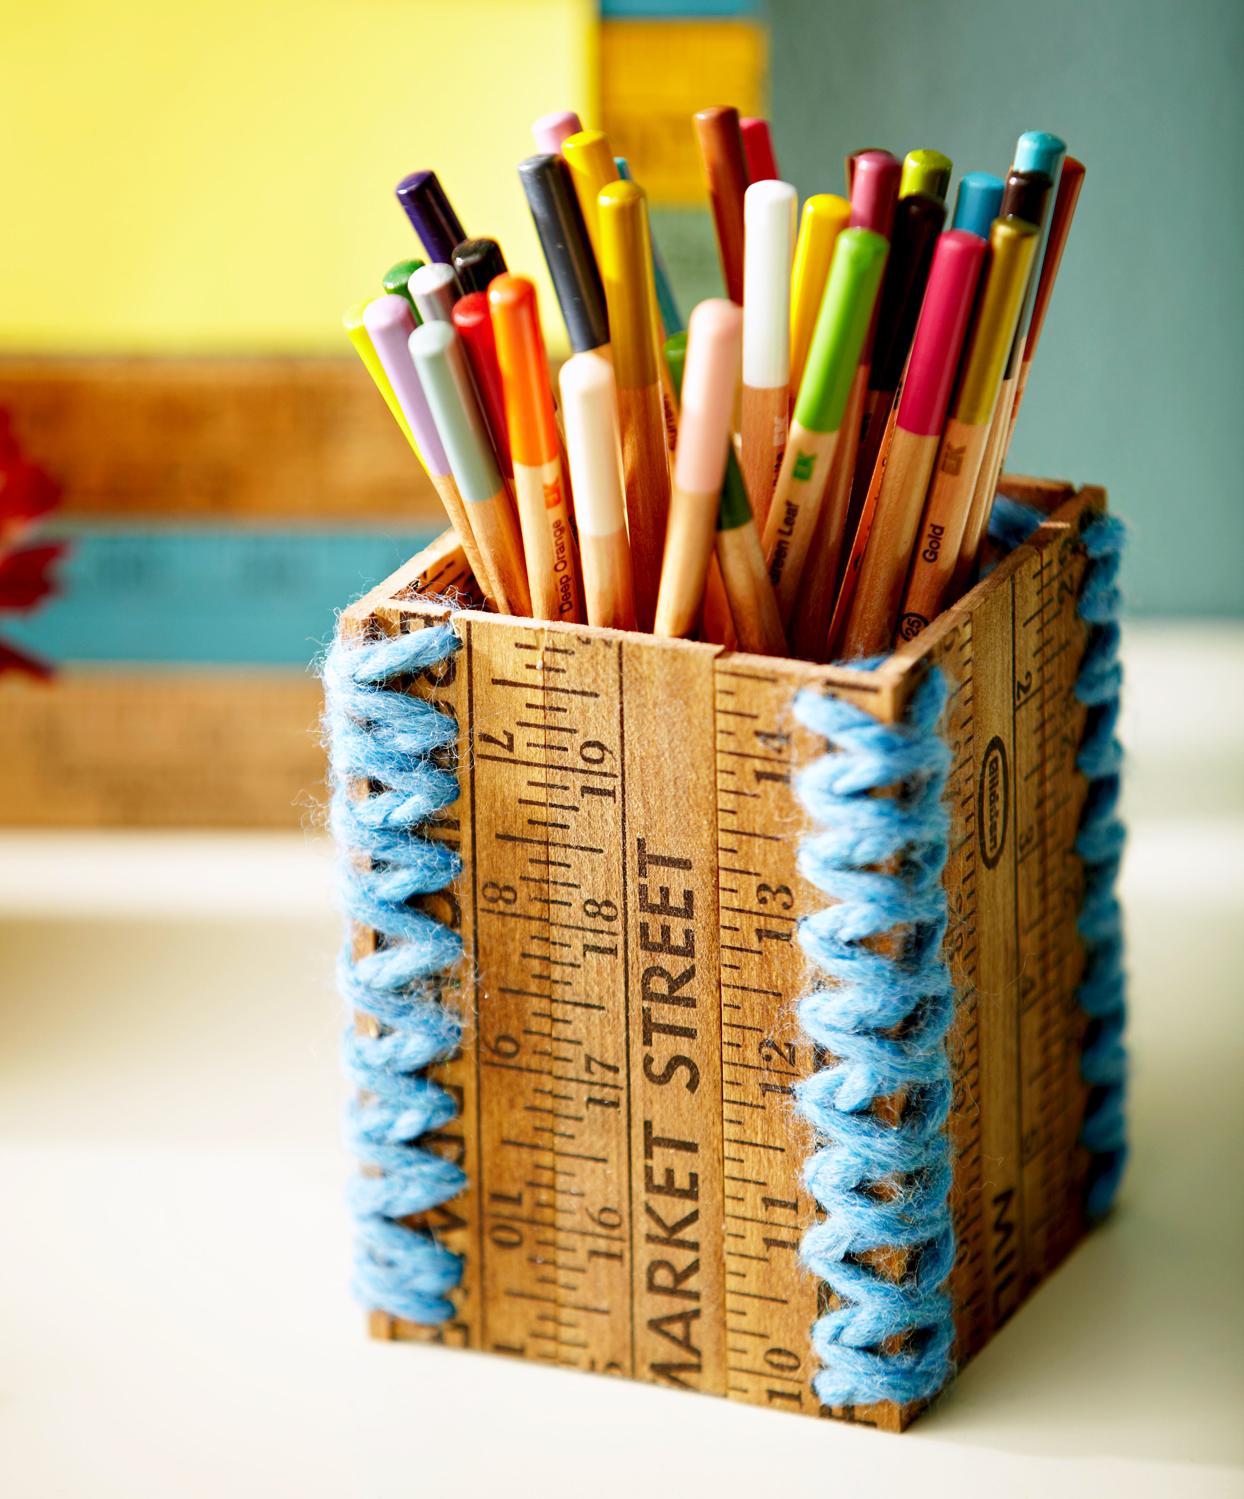 Stitched-together pencil case